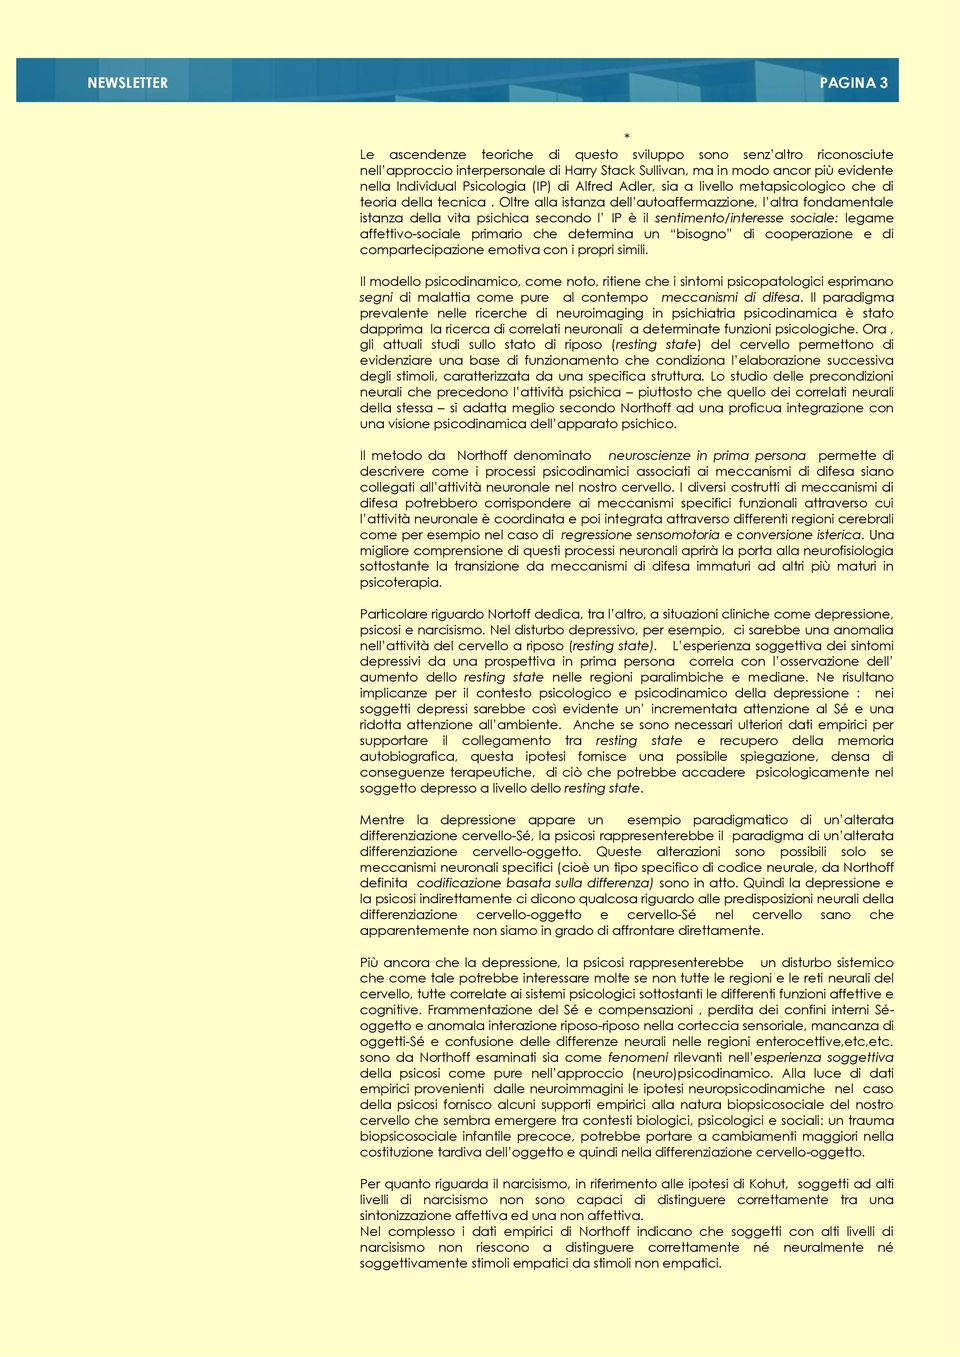 articolo di questa NL Psychoanalysis and the brain why did Freud abandon neuroscience? PAGINA 3 a proposito del rapporto tra psicoanalisi e cervello.